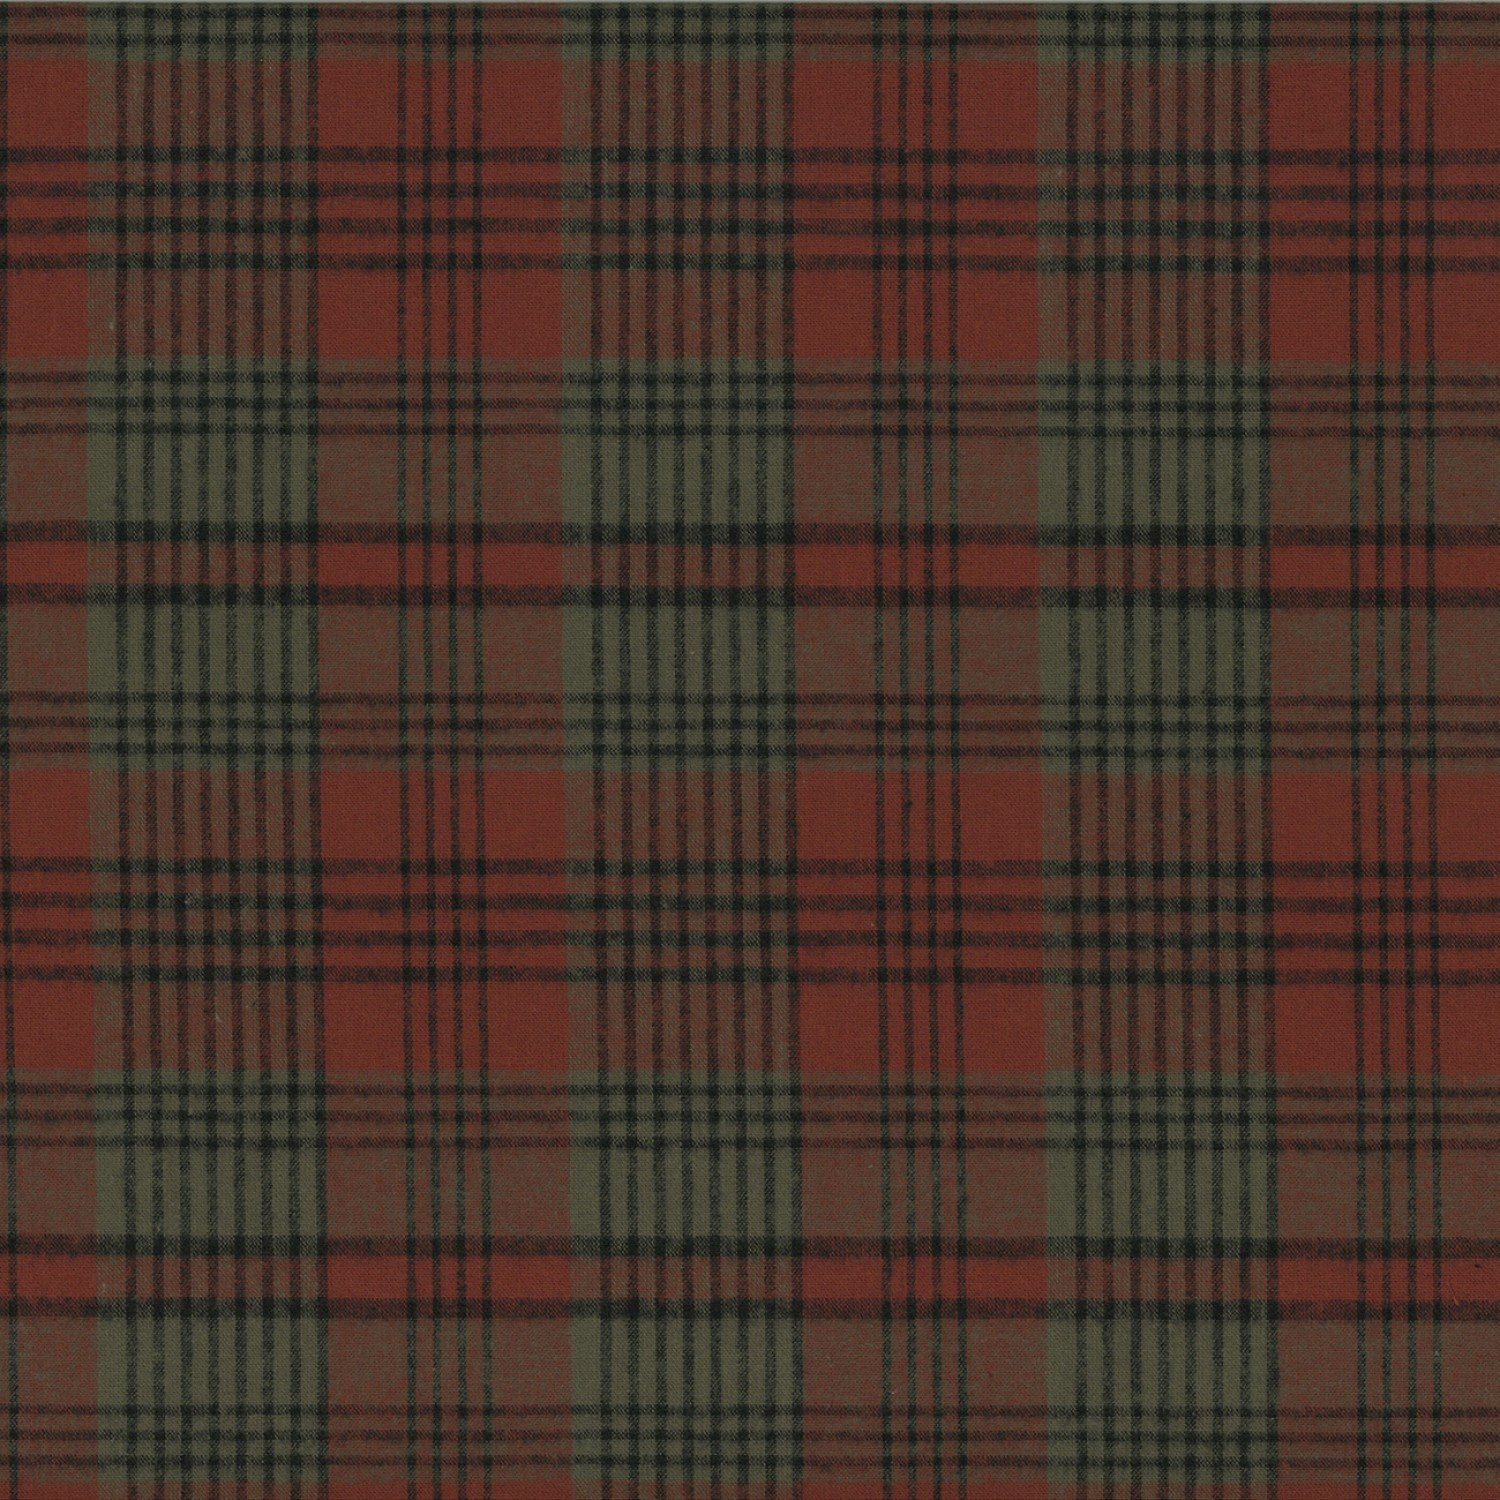 Centenary Collection - Brushed Cotton Plaid Rust/Taupe